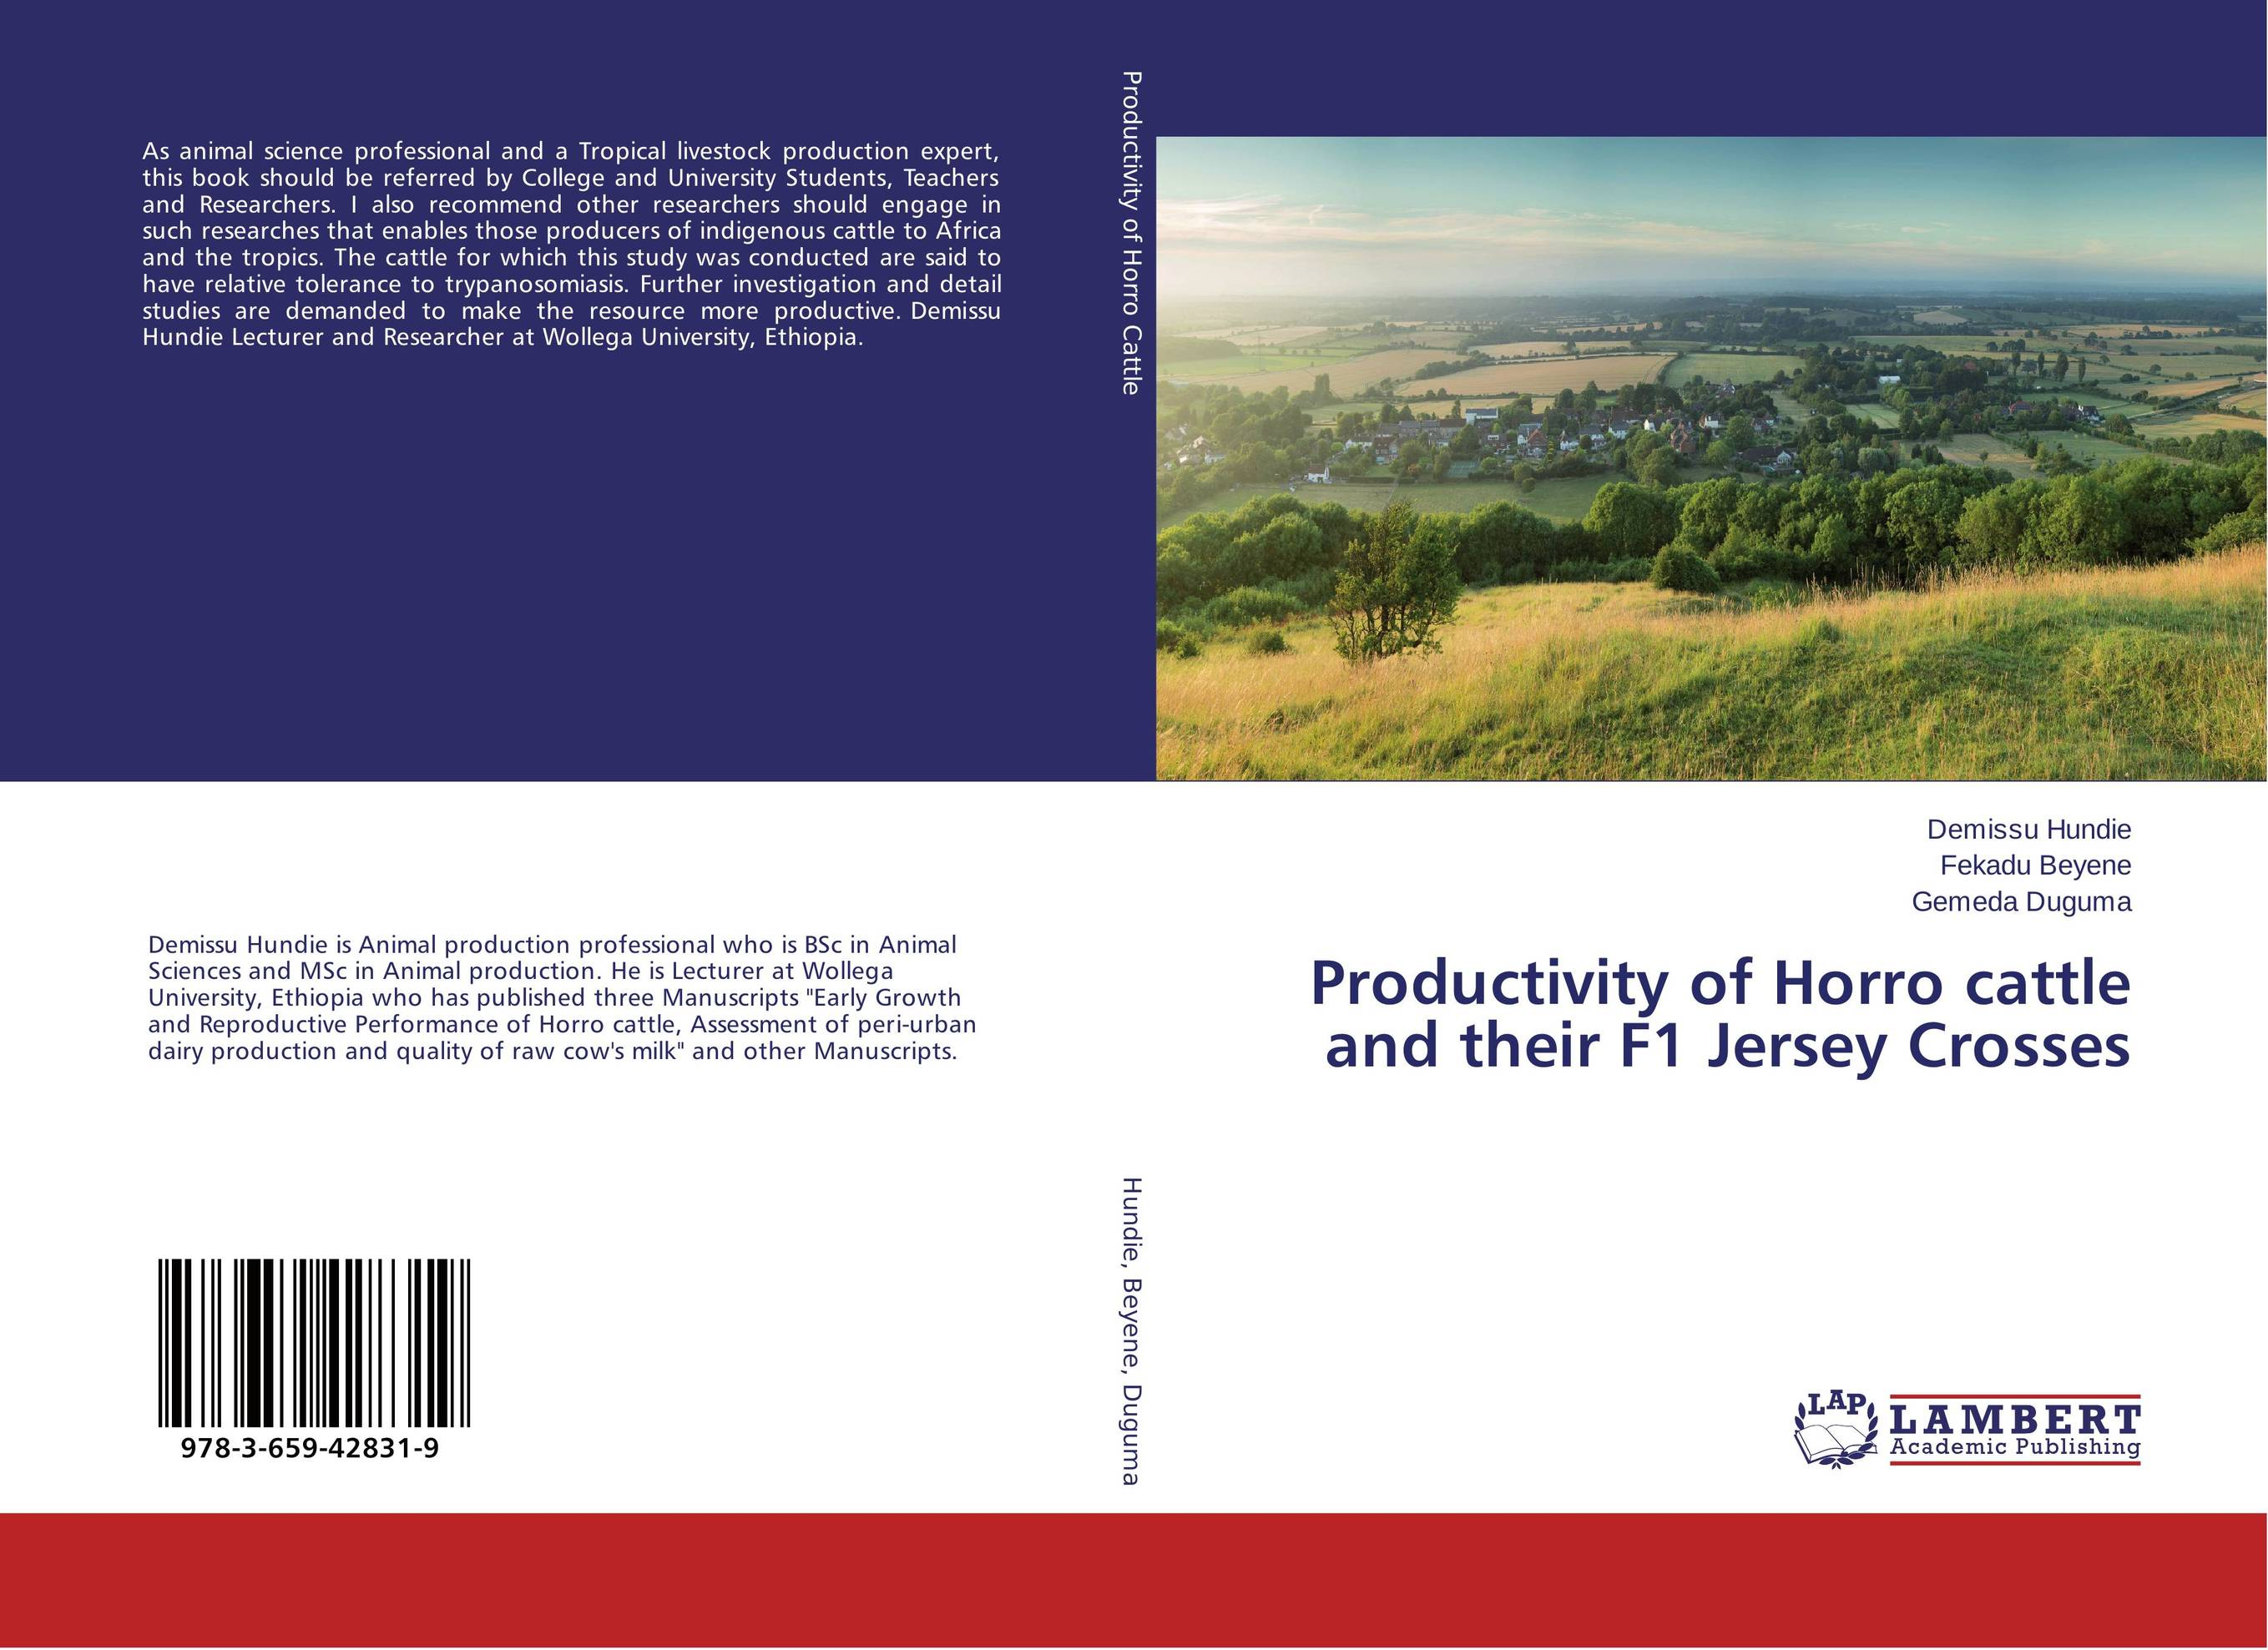 цена на Productivity of Horro cattle and their F1 Jersey Crosses